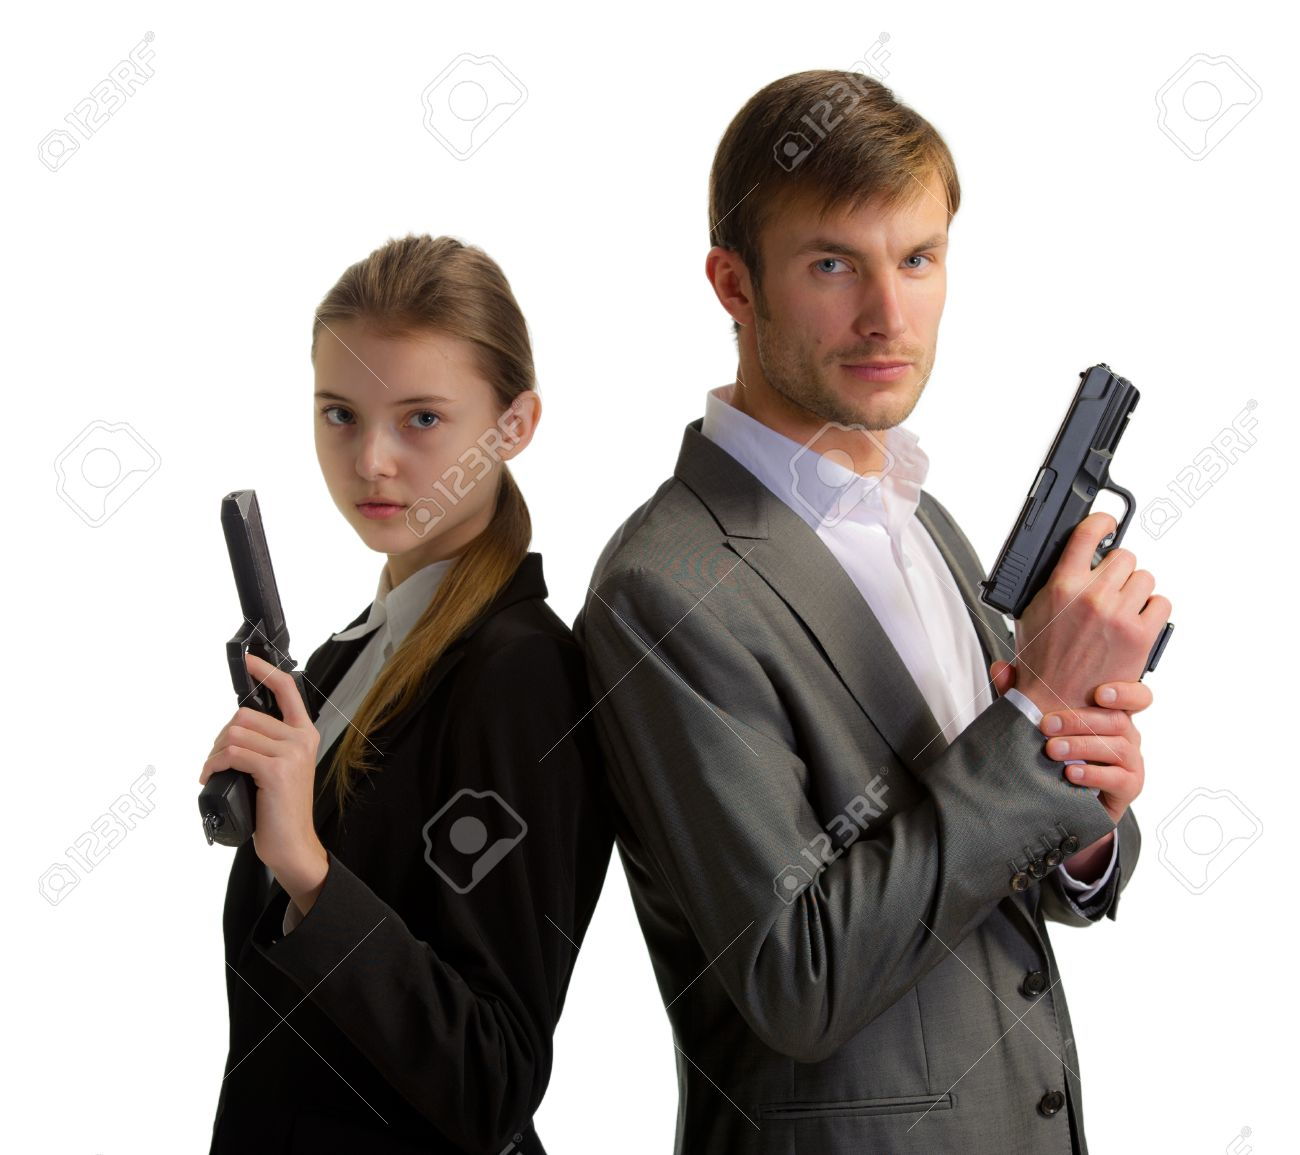 couple of nice bodyguards the man and the woman with guns in hands isolated on a white background Stock Photo - 18872622